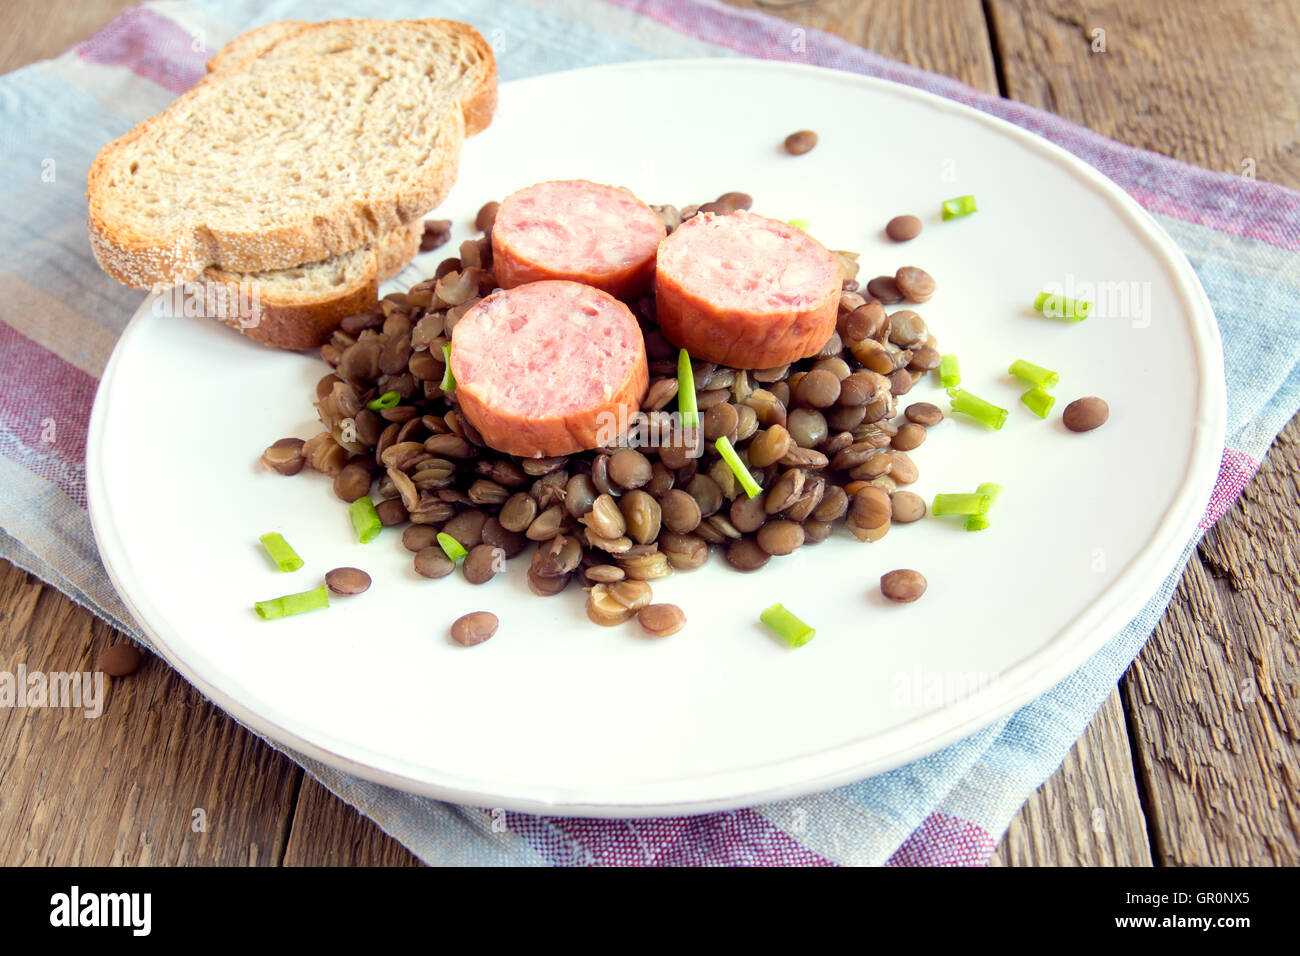 Green lentil with pork sausage (cotechino) on white plate Stock Photo